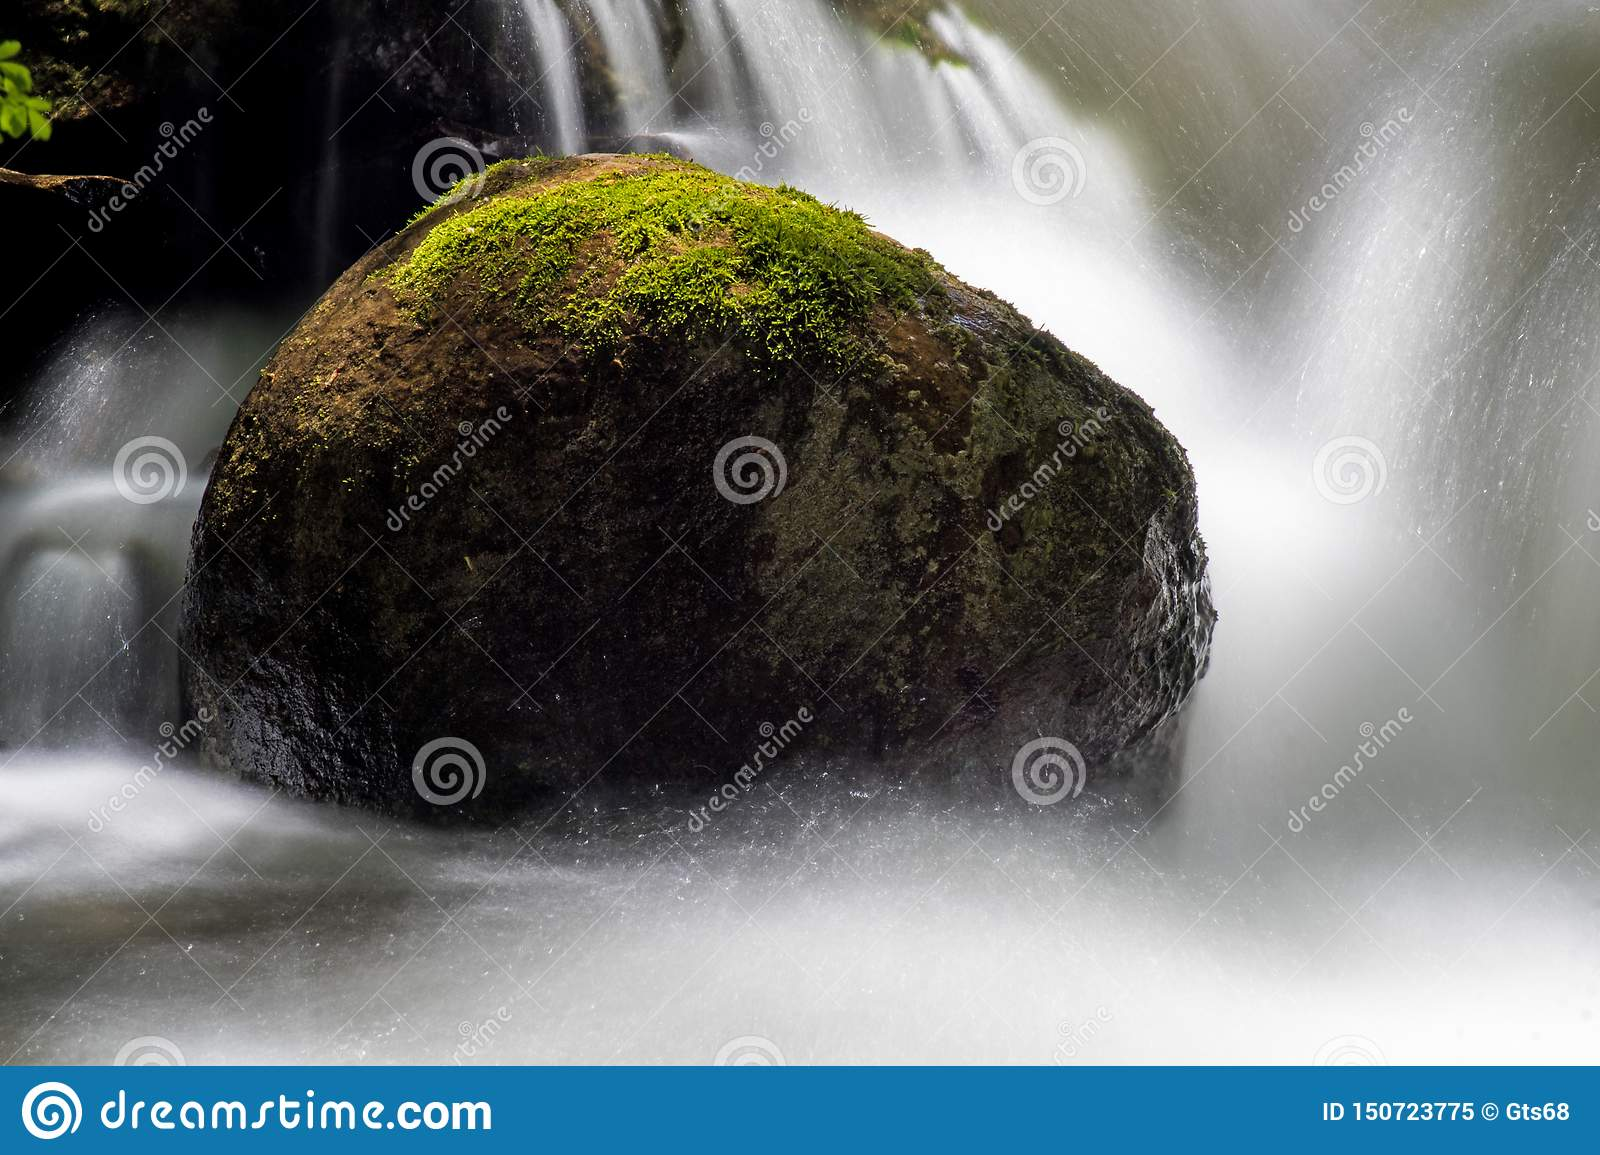 Close-Up Of A Moss Covered Rock Surrounded By Water